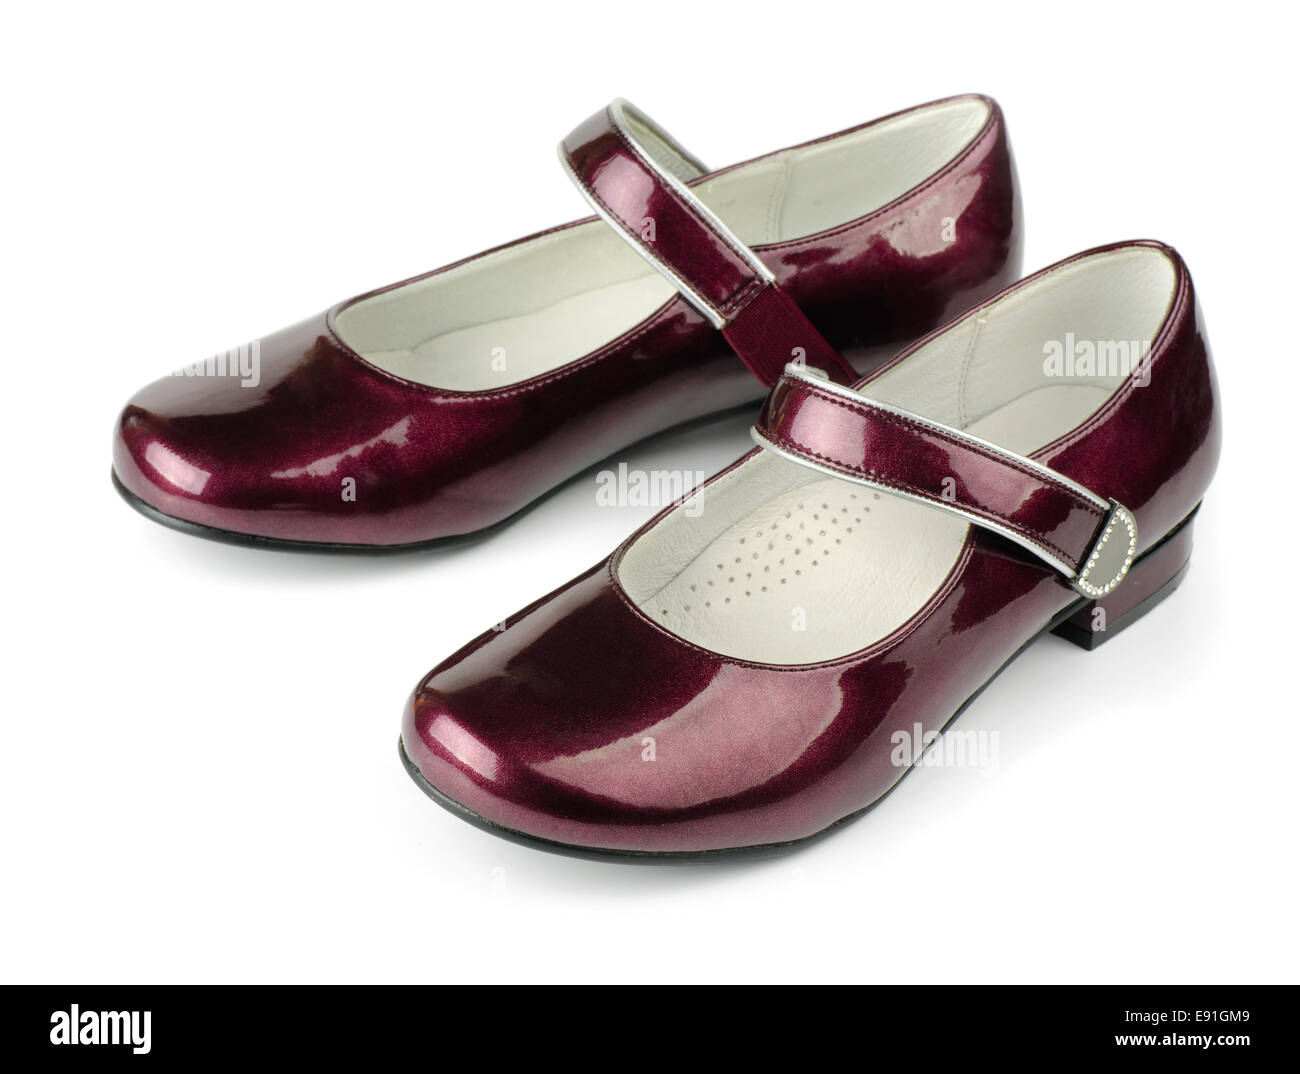 Patent leather shoes Stock Photo